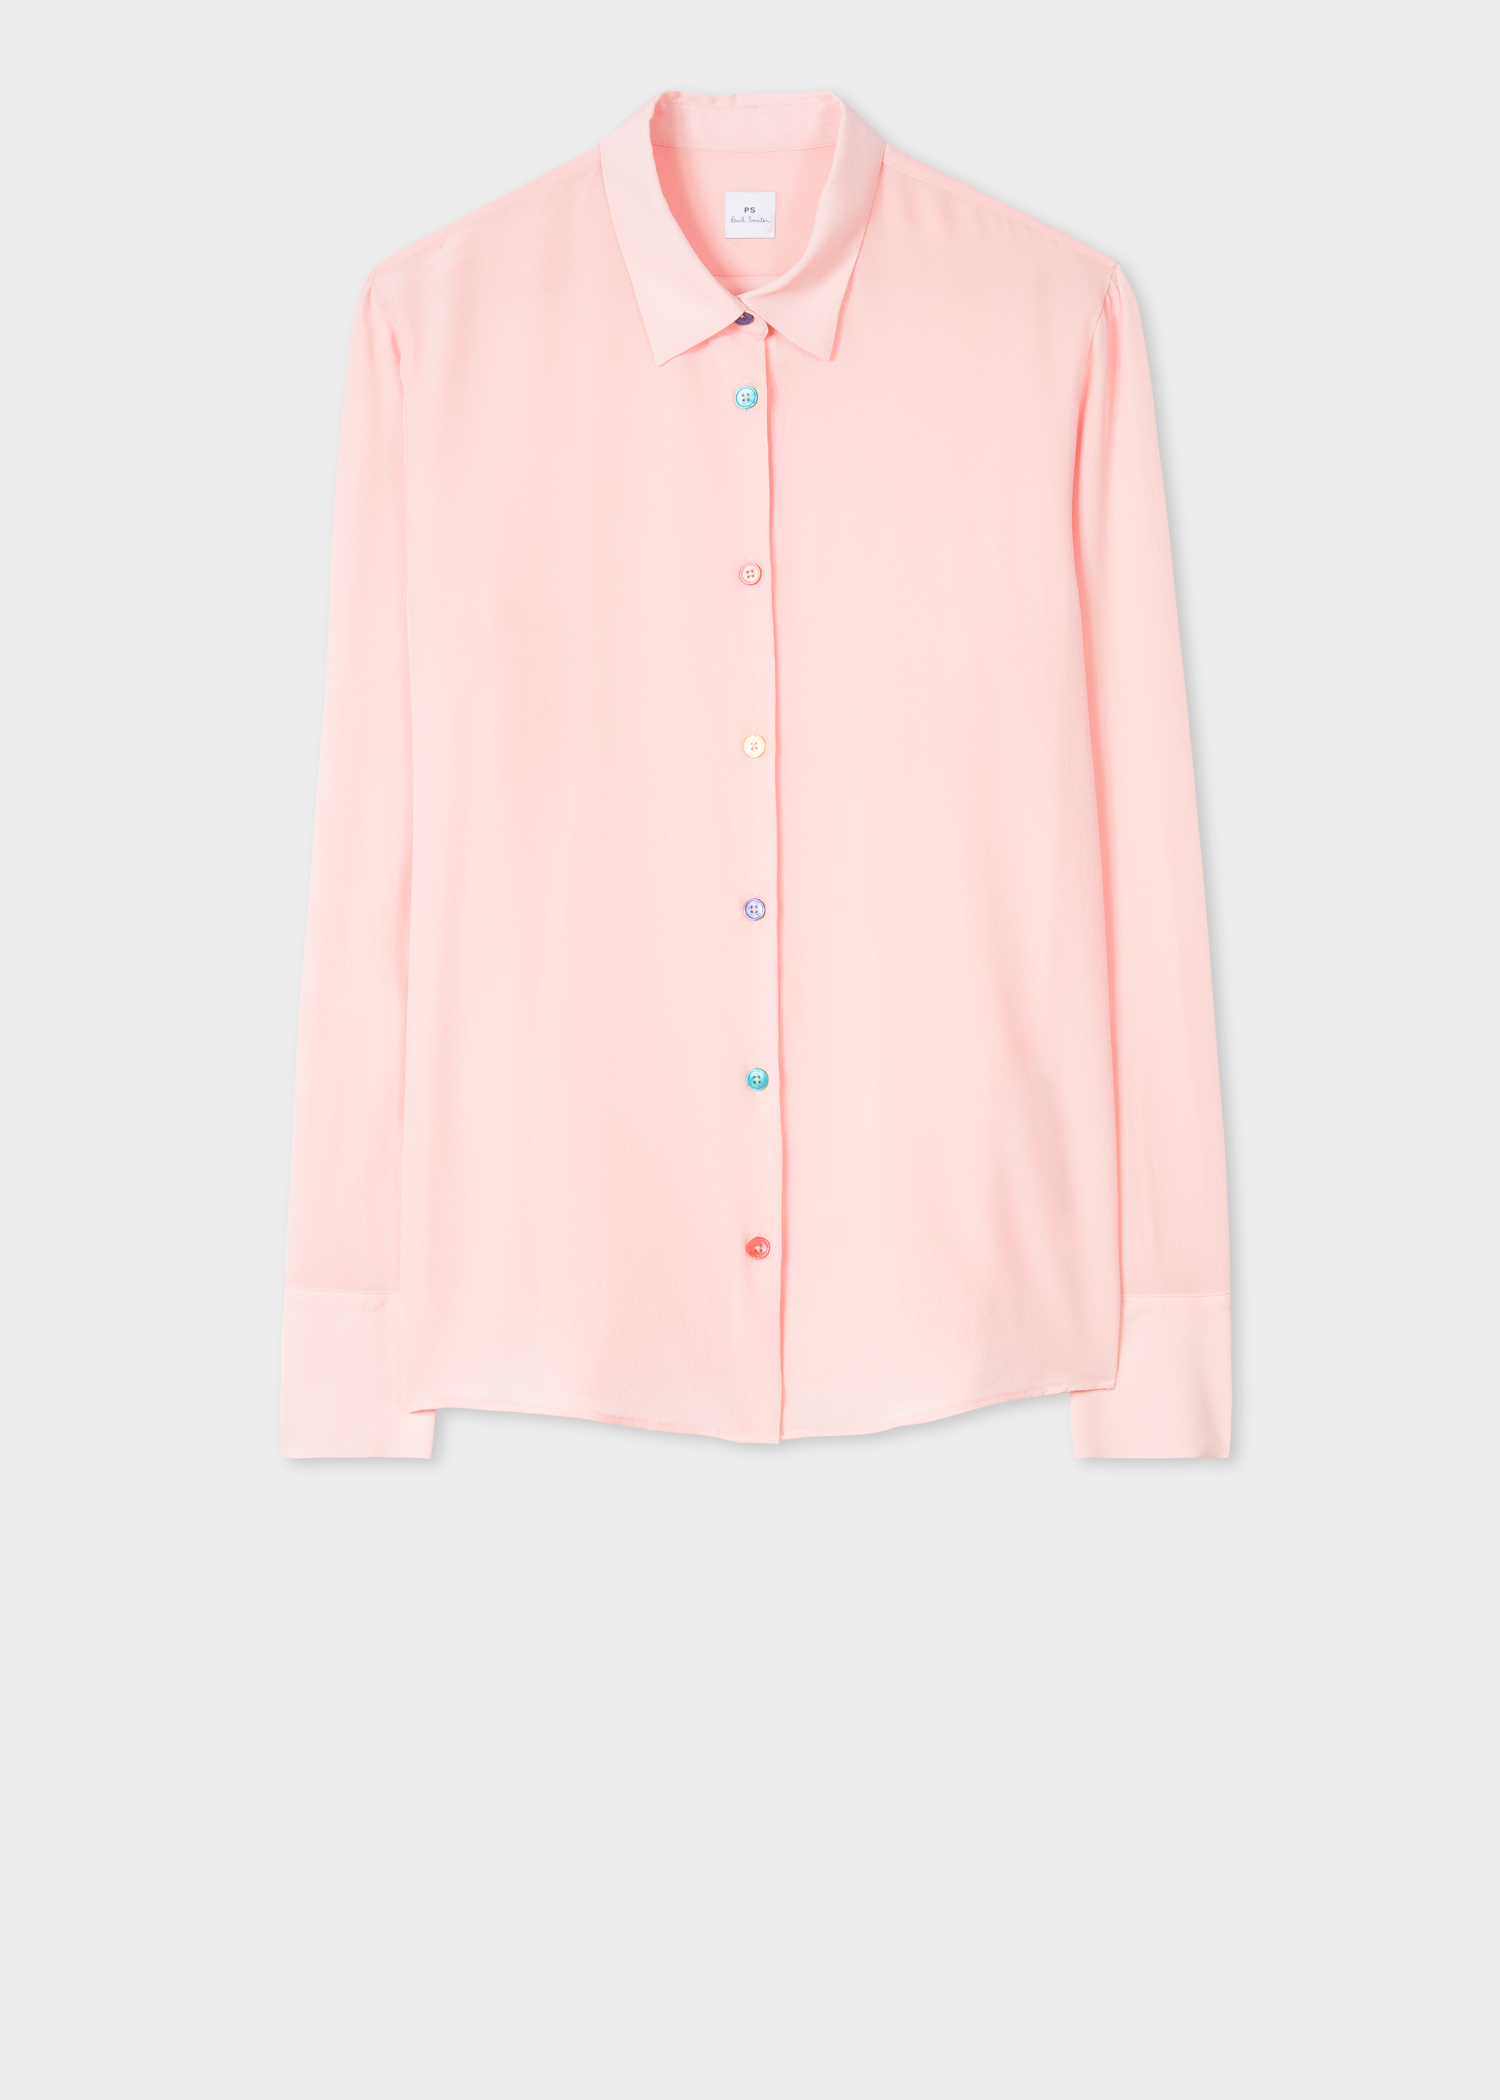 53ee8413bb83eb Front view - Women s Light Pink Silk Shirt With Multi-Coloured Button  Placket Paul Smith